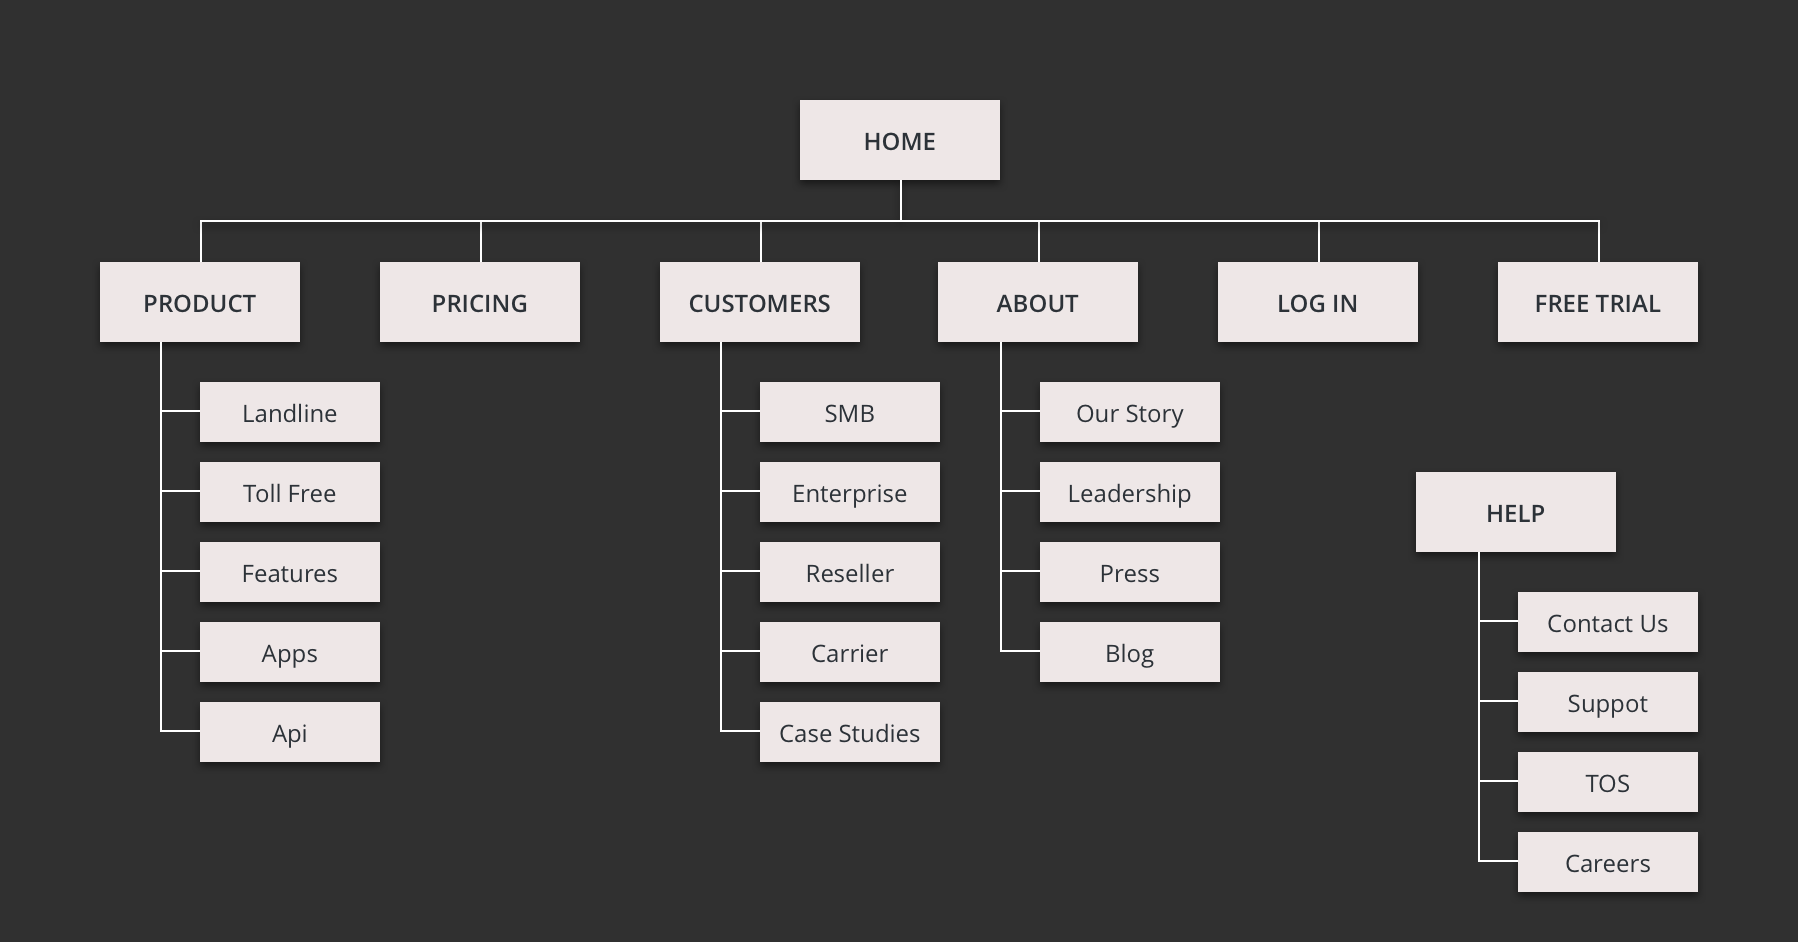 Information Architecture - CURRENT SITE